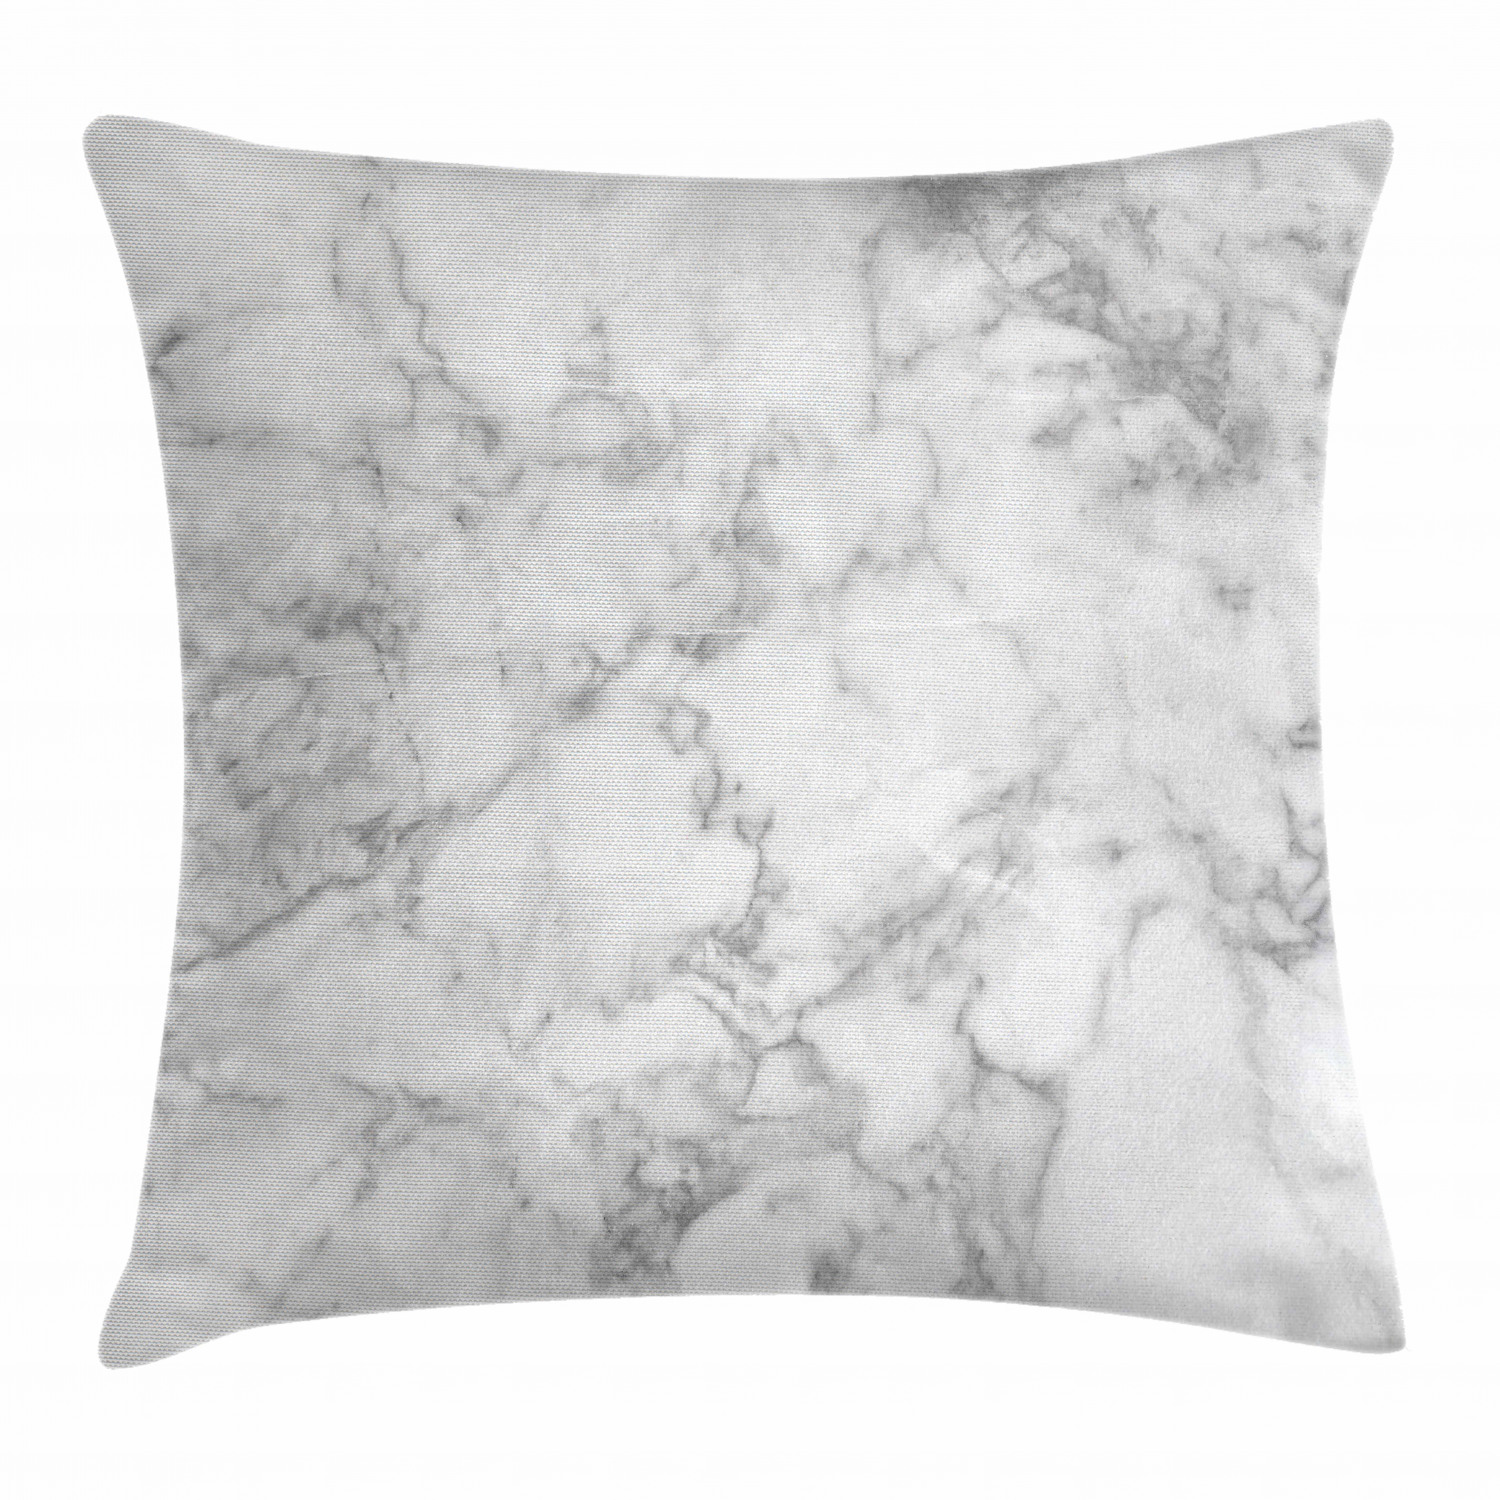 marble throw pillow cushion cover nature granite pattern with cloudy spotted trace effects marble artistic image decorative square accent pillow